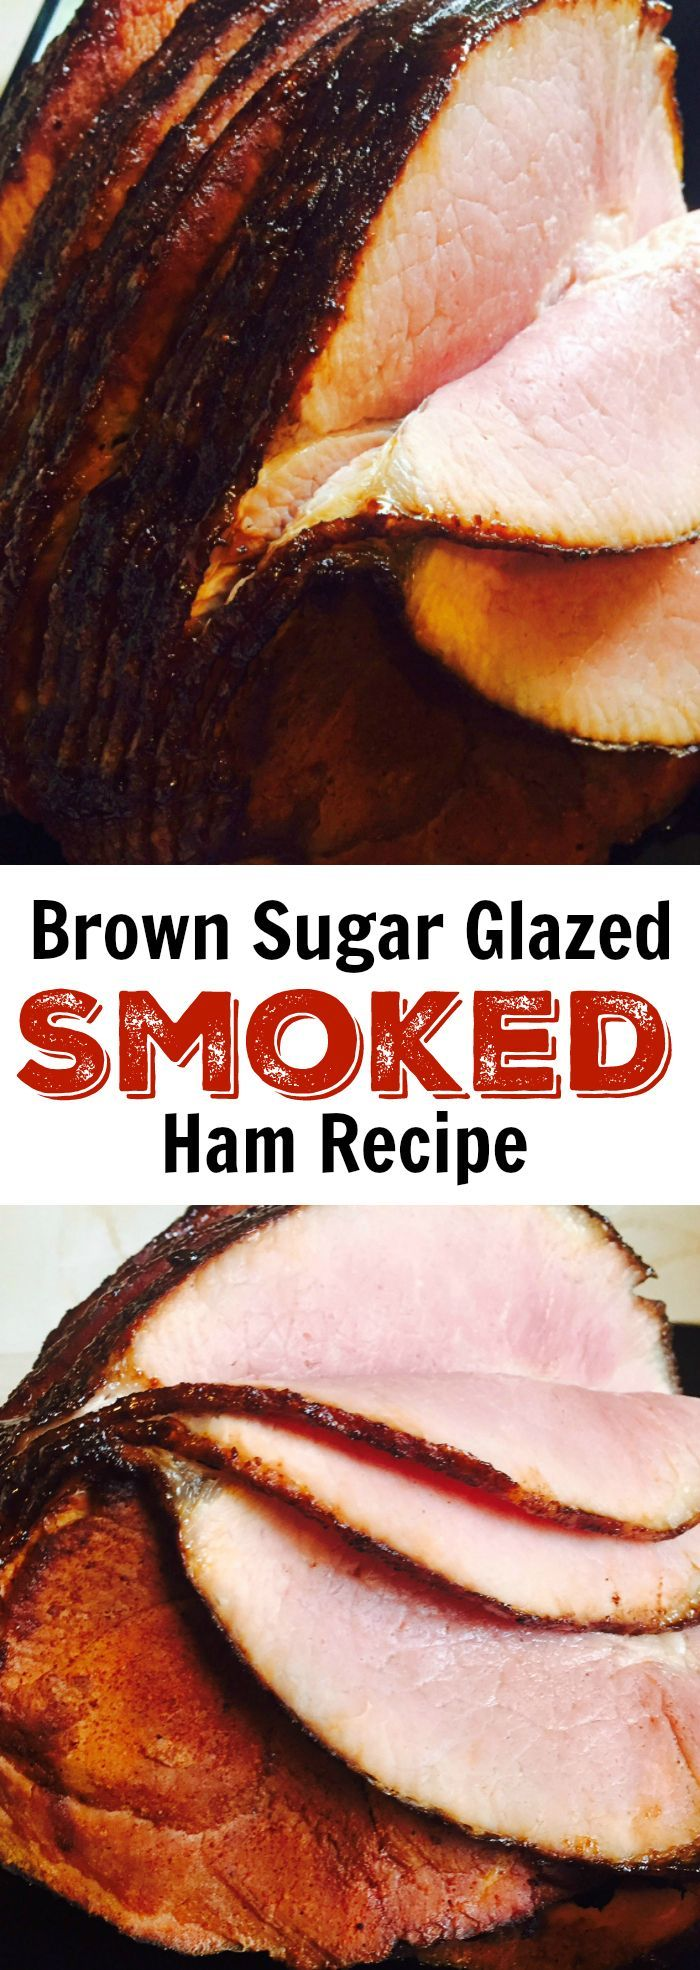 Brown Sugar Glazed Smoked Ham Recipe